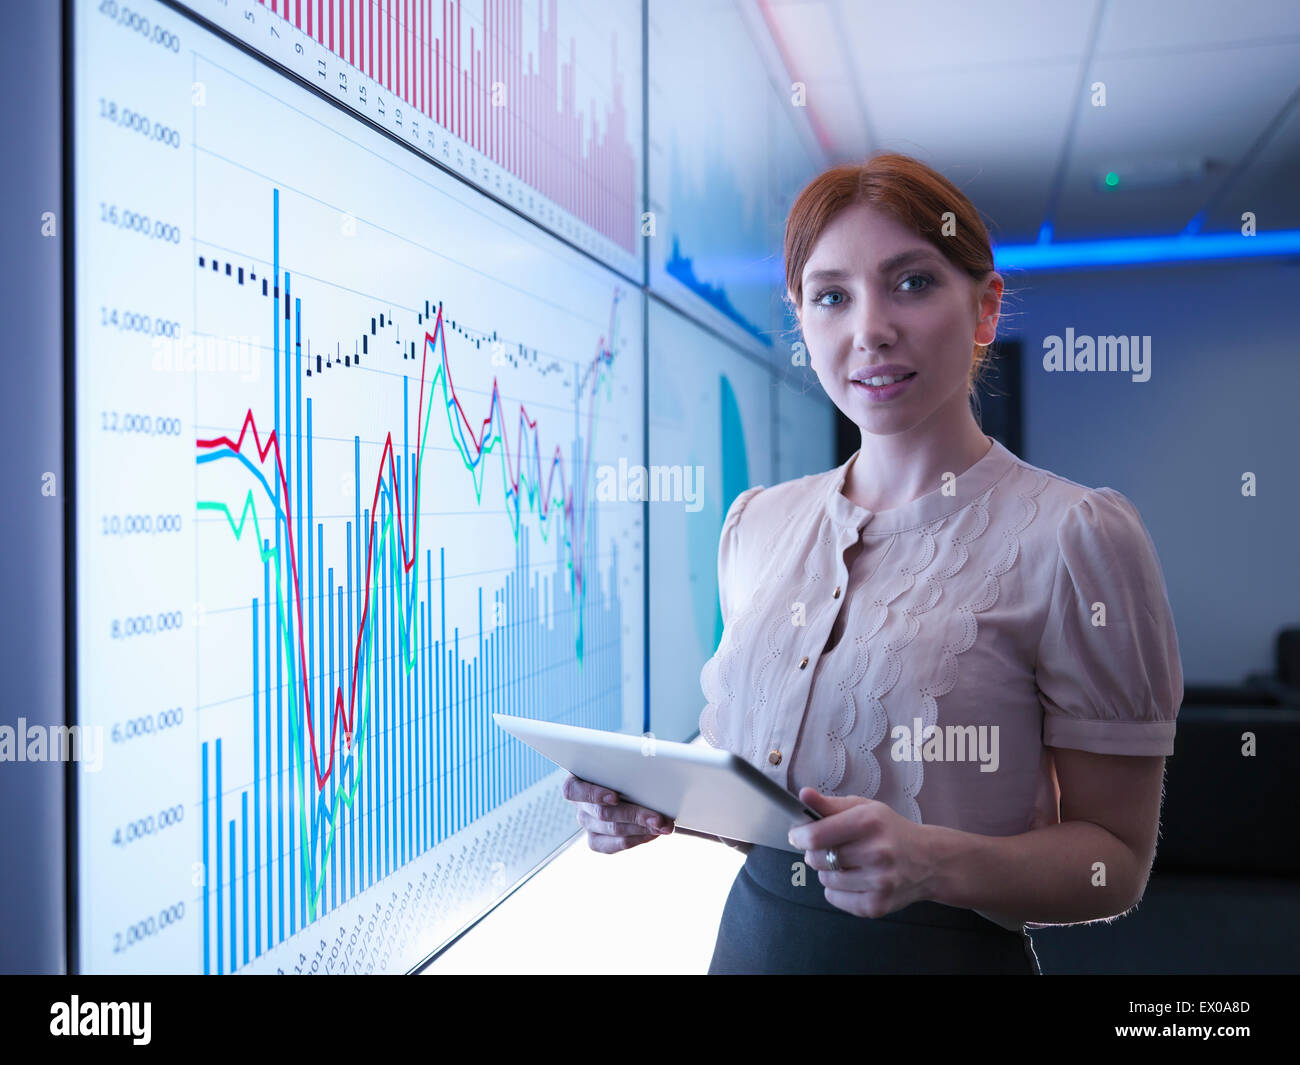 Businesswoman holding digital tablet in front of graphs on screens, portrait - Stock Image